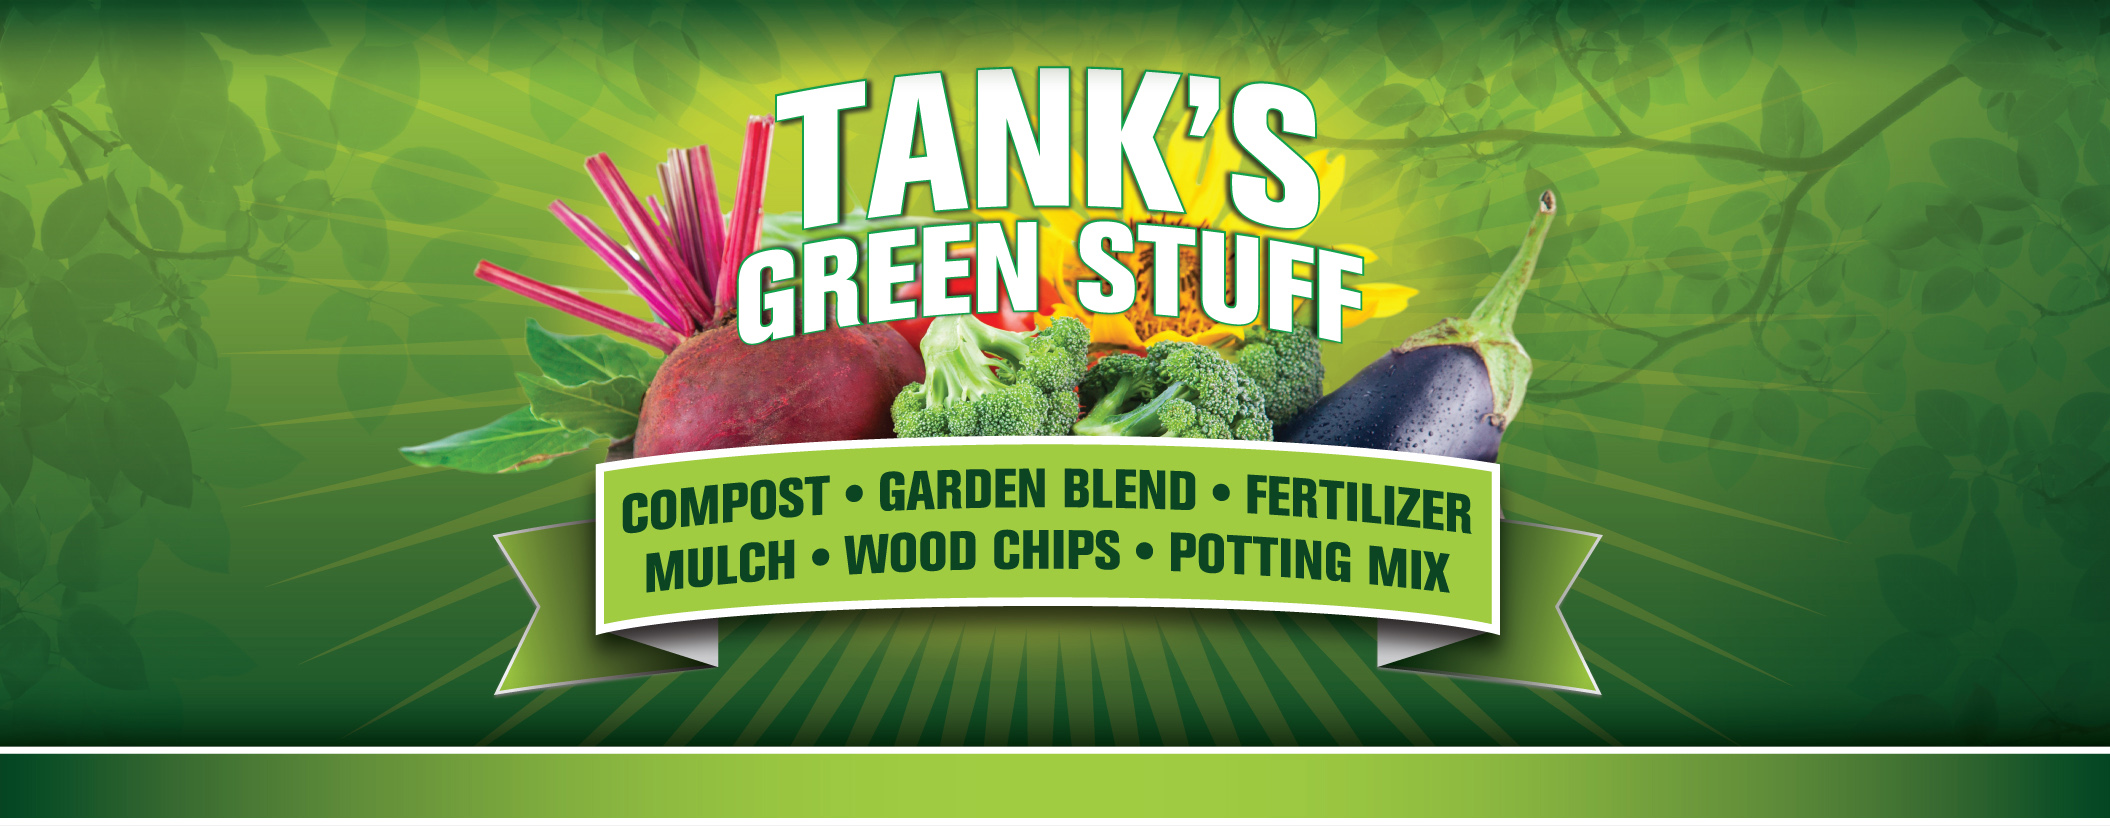 Why Tank's? - Tank's Green Stuff